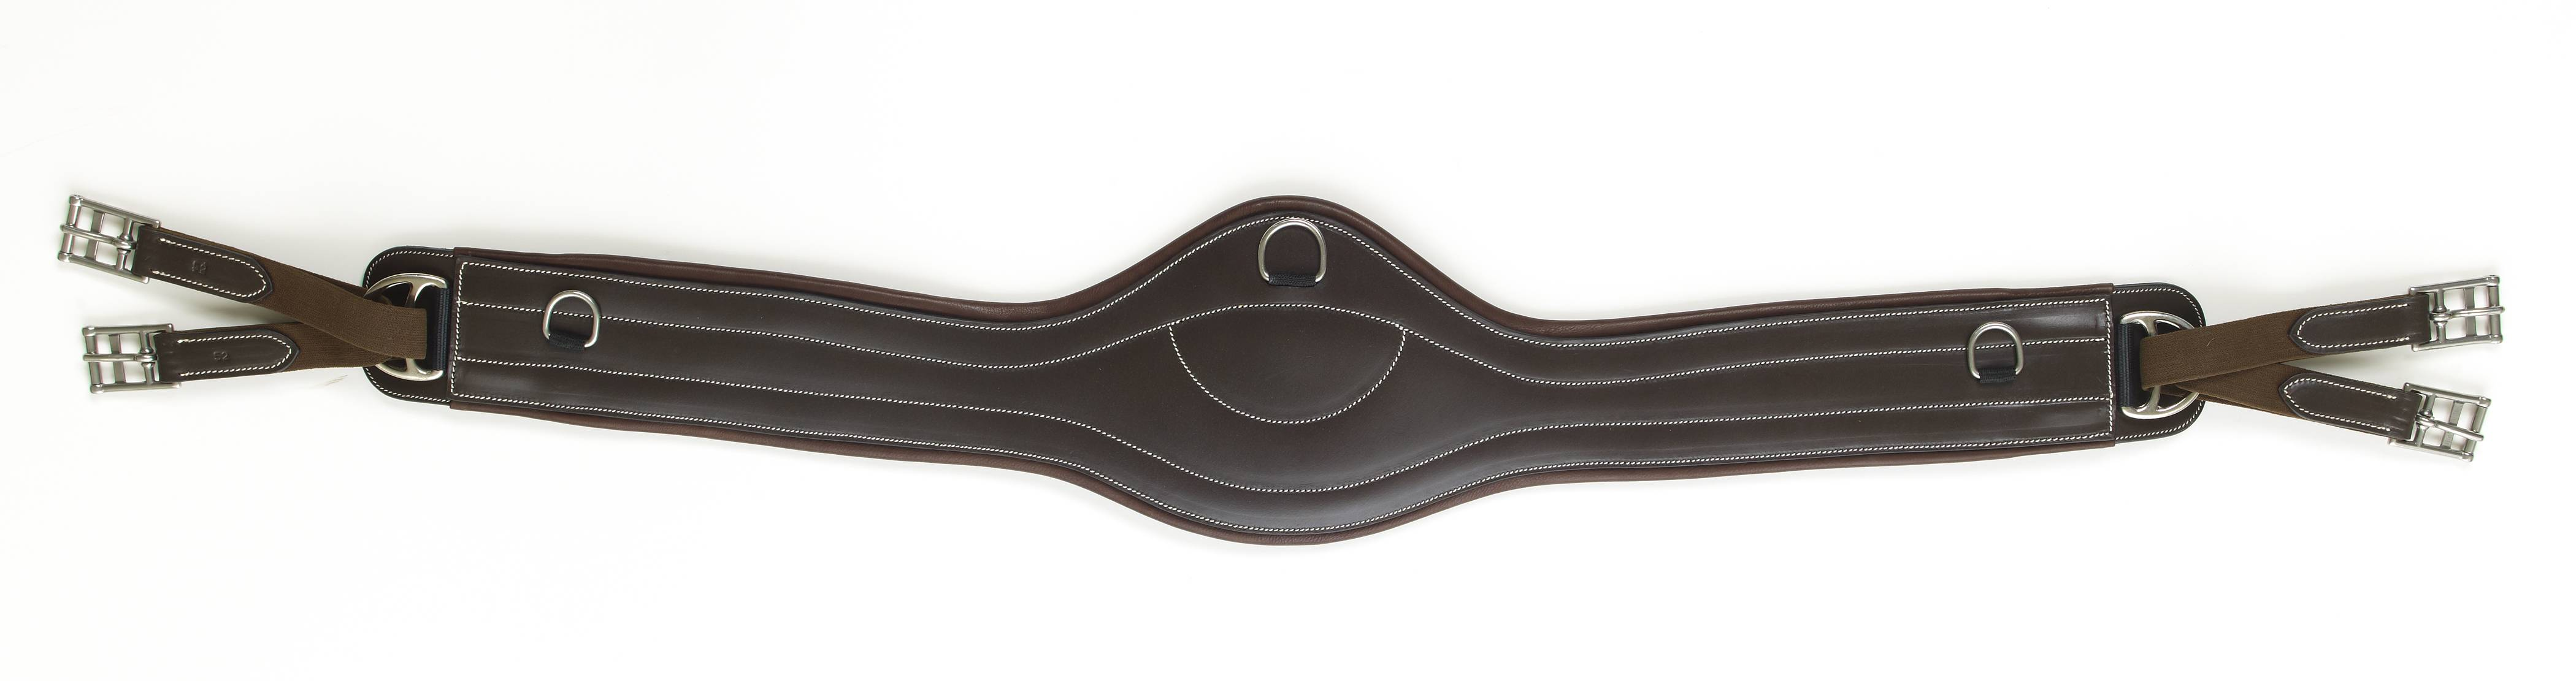 Ovation Humane Overlay Girth